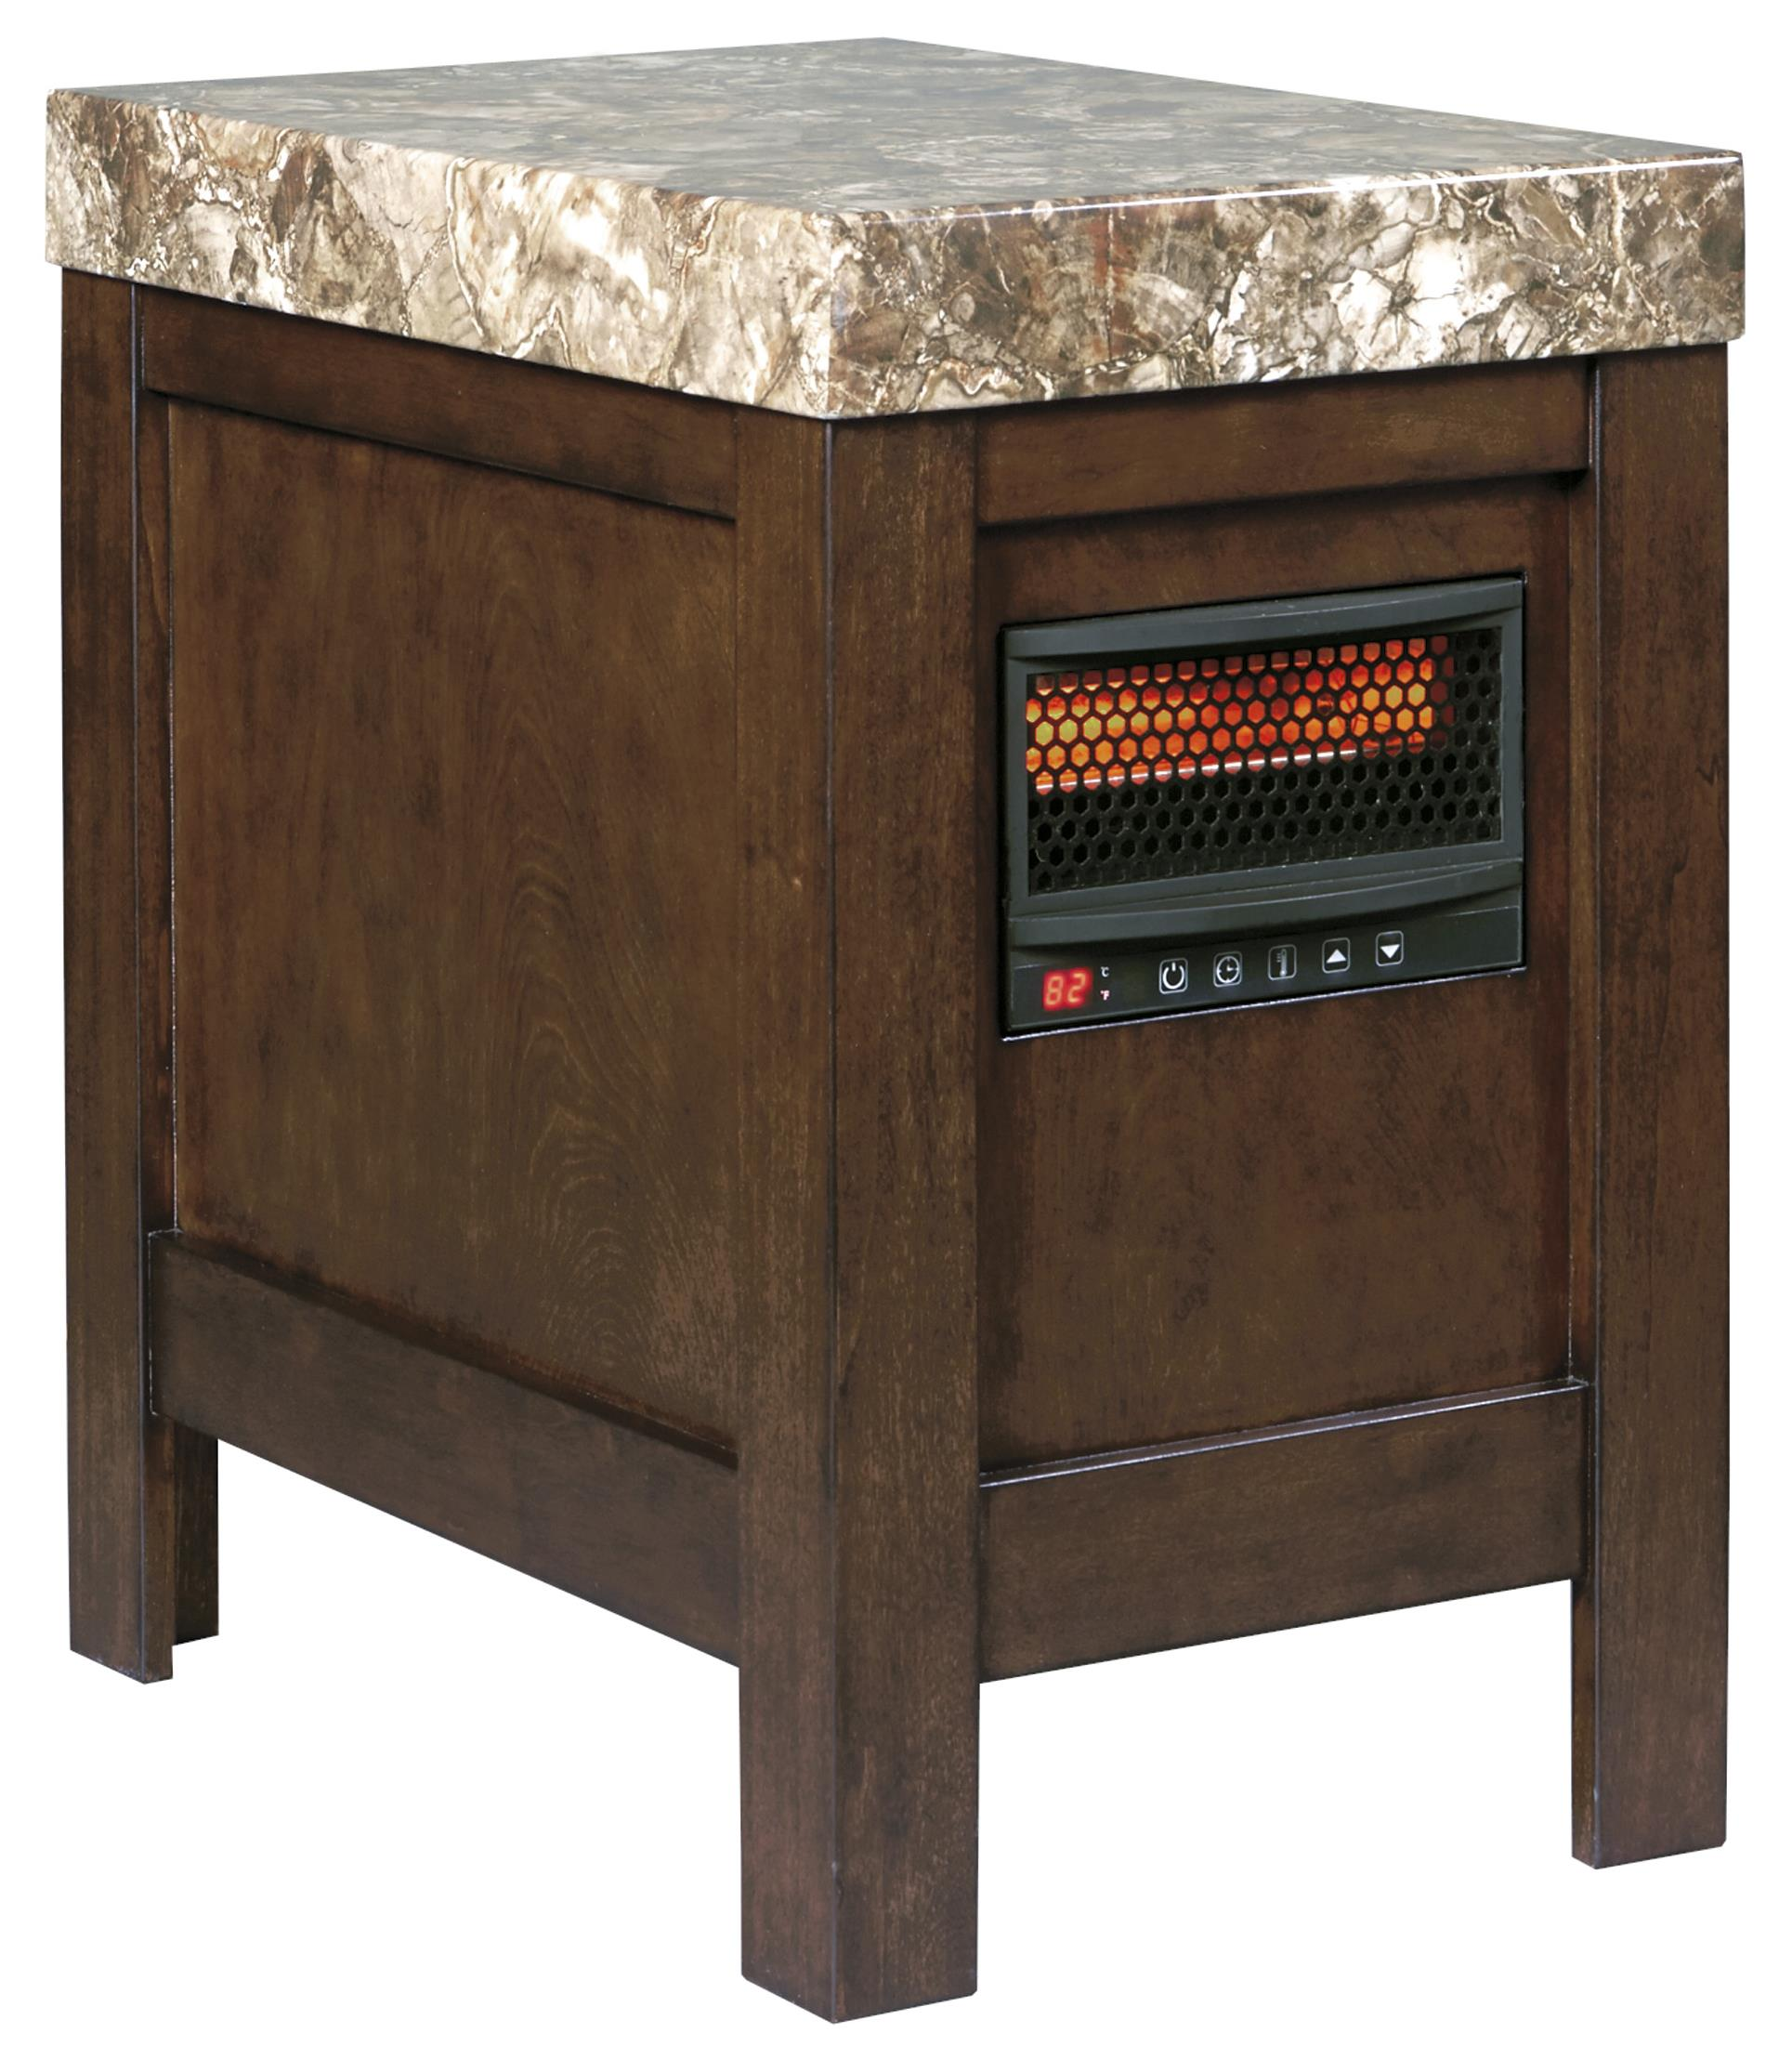 Signature Design by Ashley Kraleene Chair Side End Table w/ Heater - Item Number: T687-17